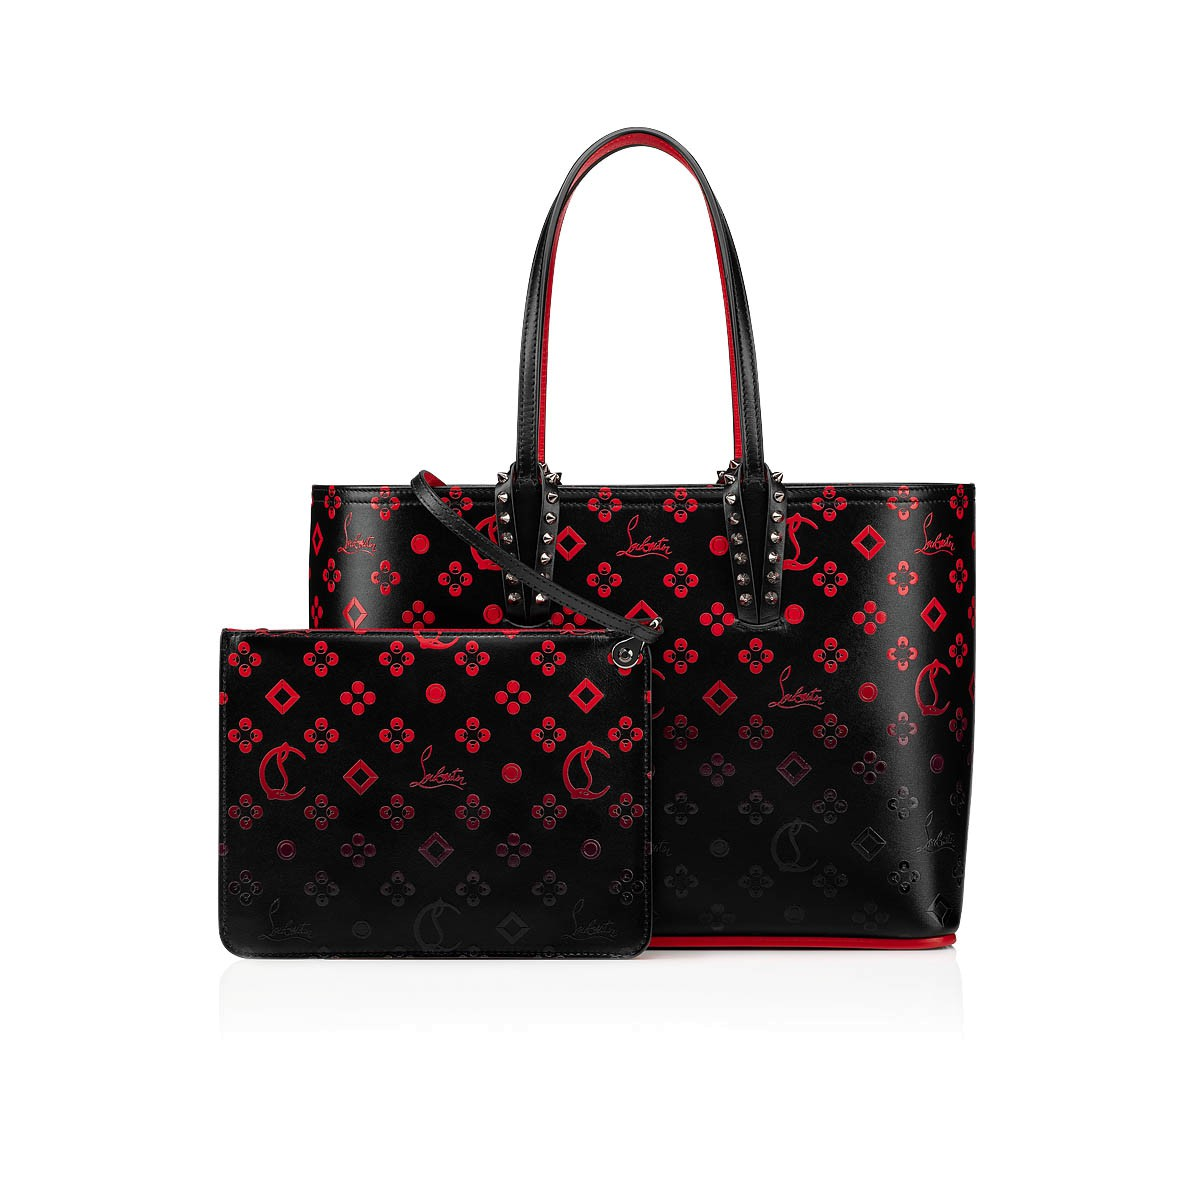 check out low priced utterly stylish CABATA SMALL TOTE BAG Black-Red/Black Calf Loubinthesky - Handbags ...